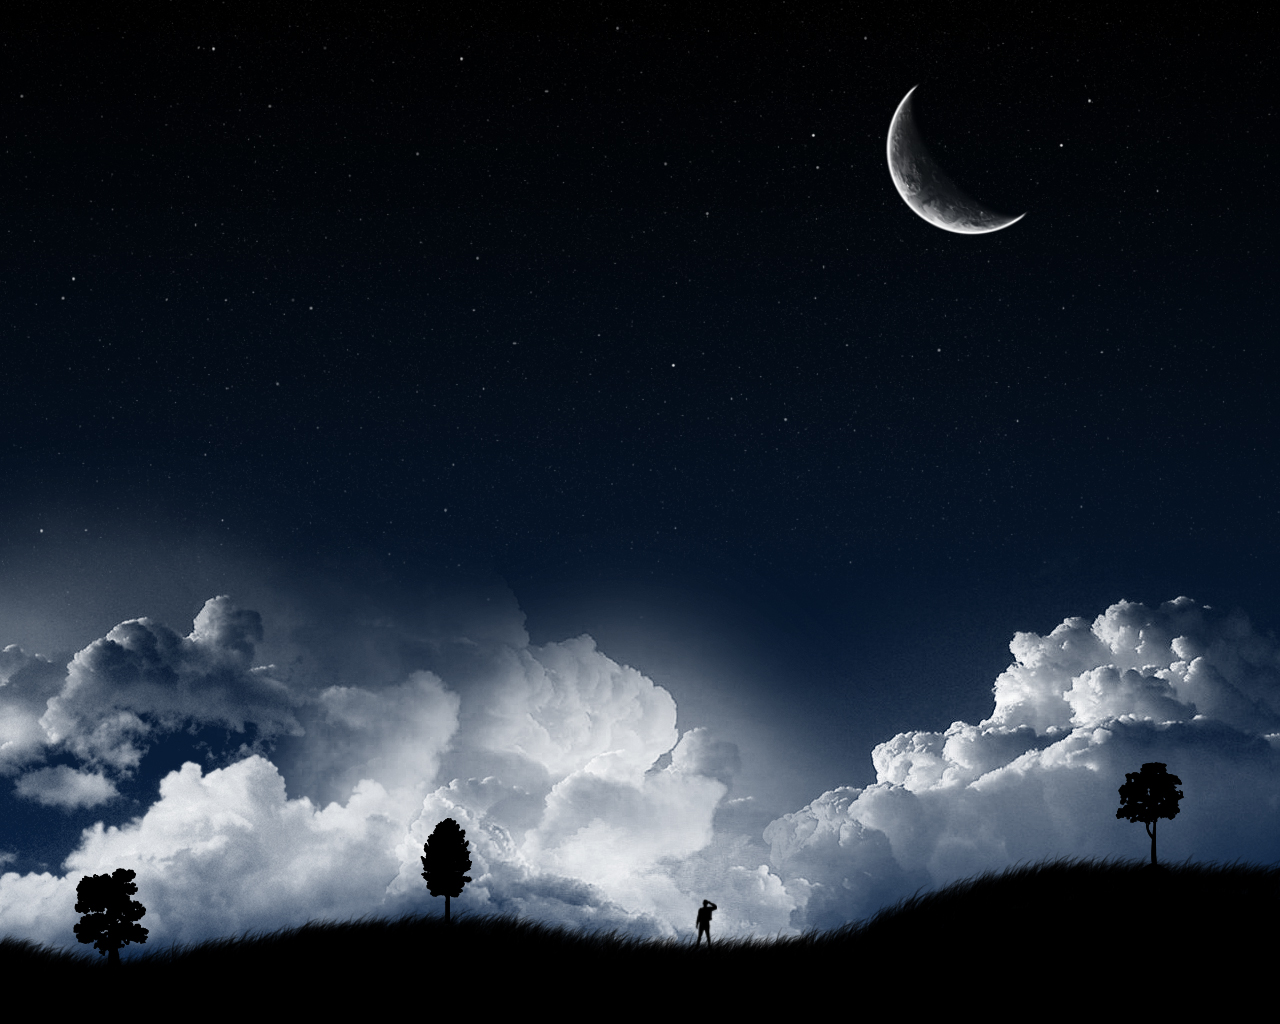 Night Wallpaper Night HD Wallpaper 1 1280x1024